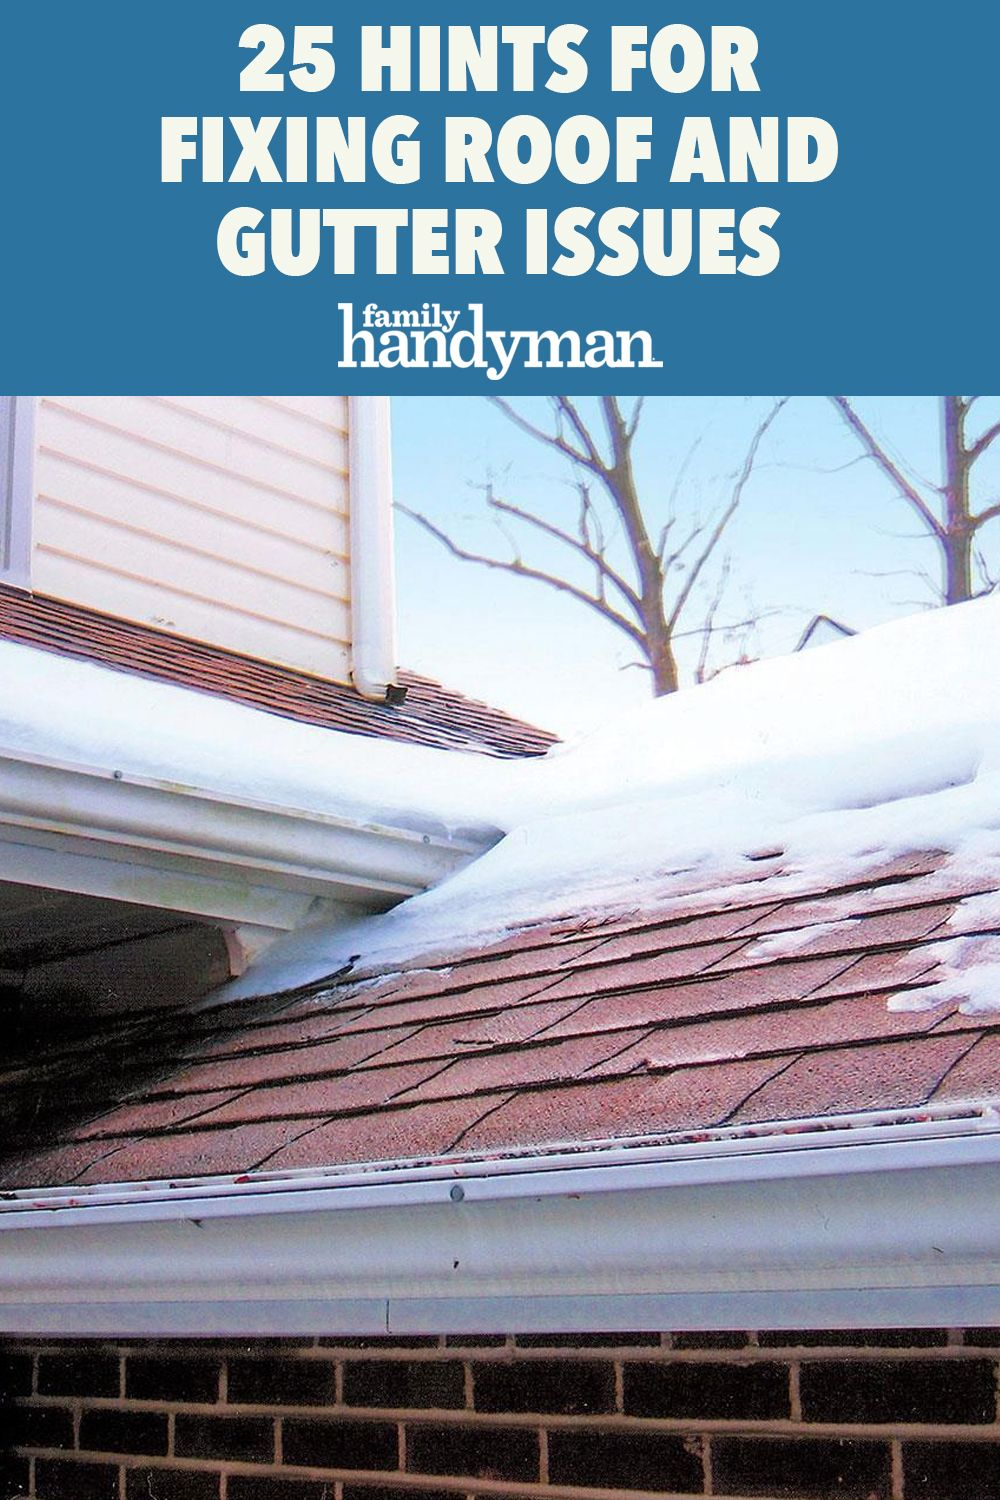 25 Hints For Fixing Roof And Gutter Issues In 2020 Roof Gutter Cleaning Gutters